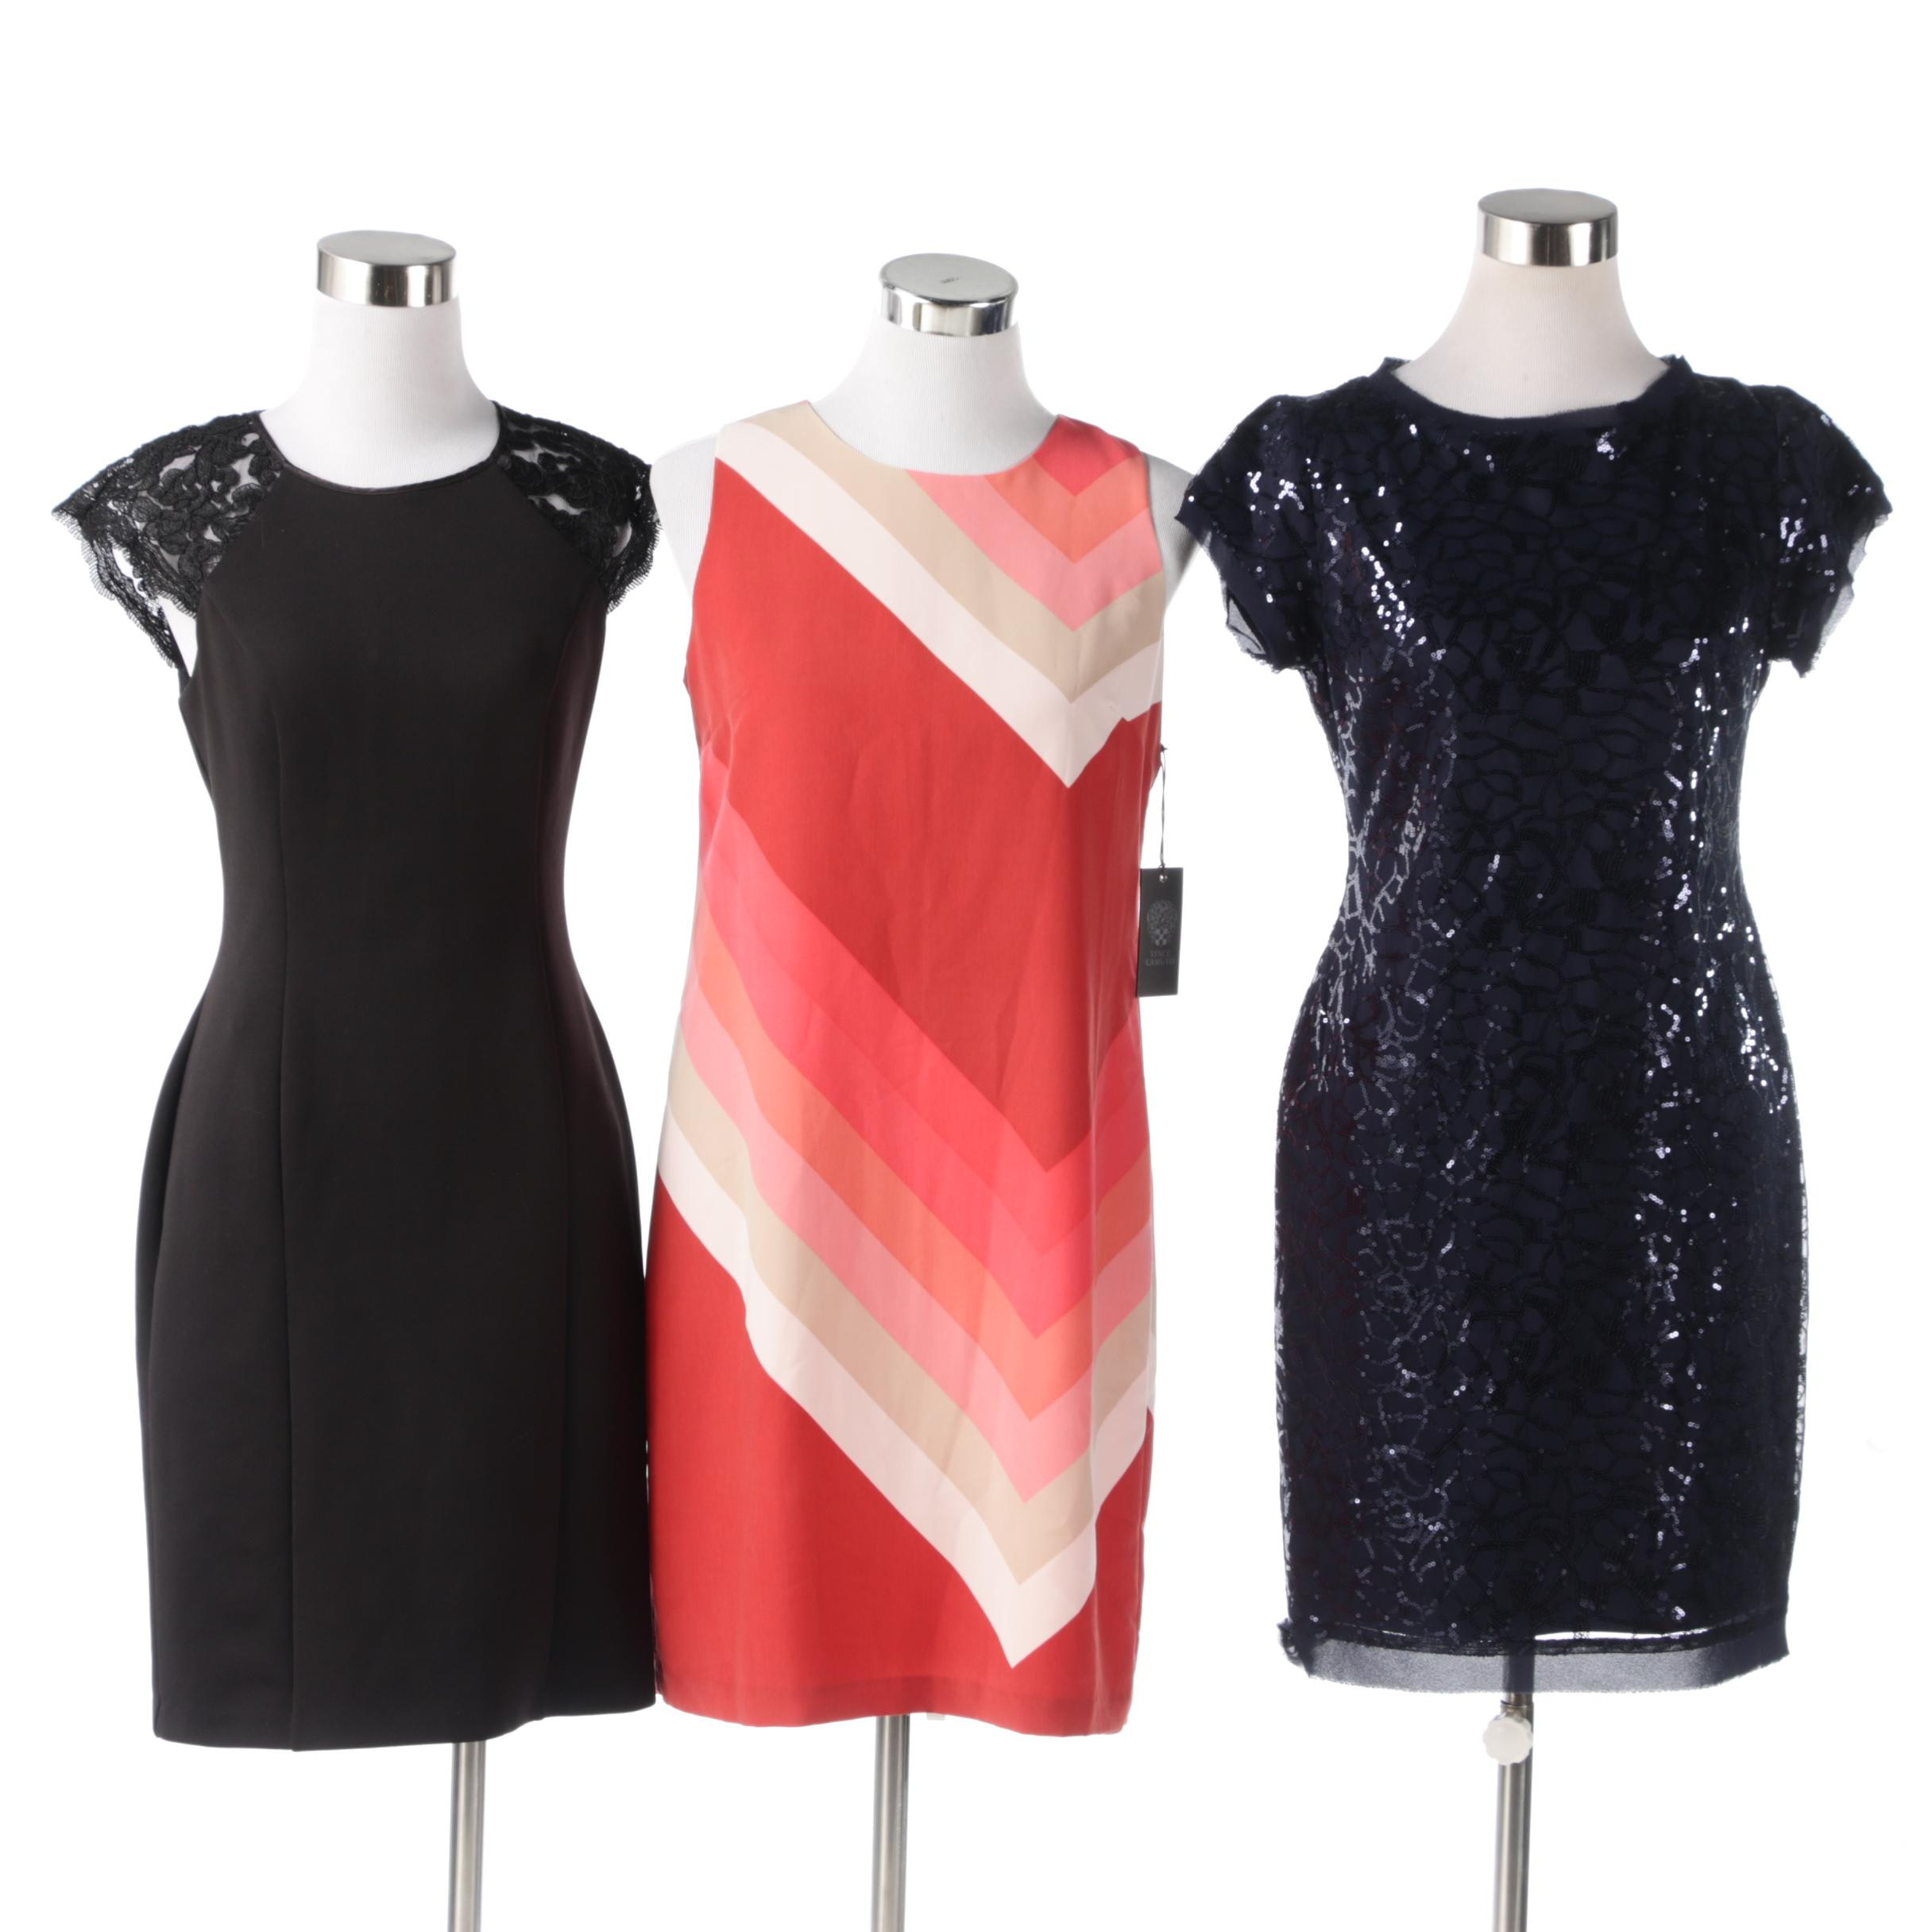 Vince Camuto Contemporary Cocktail Dresses